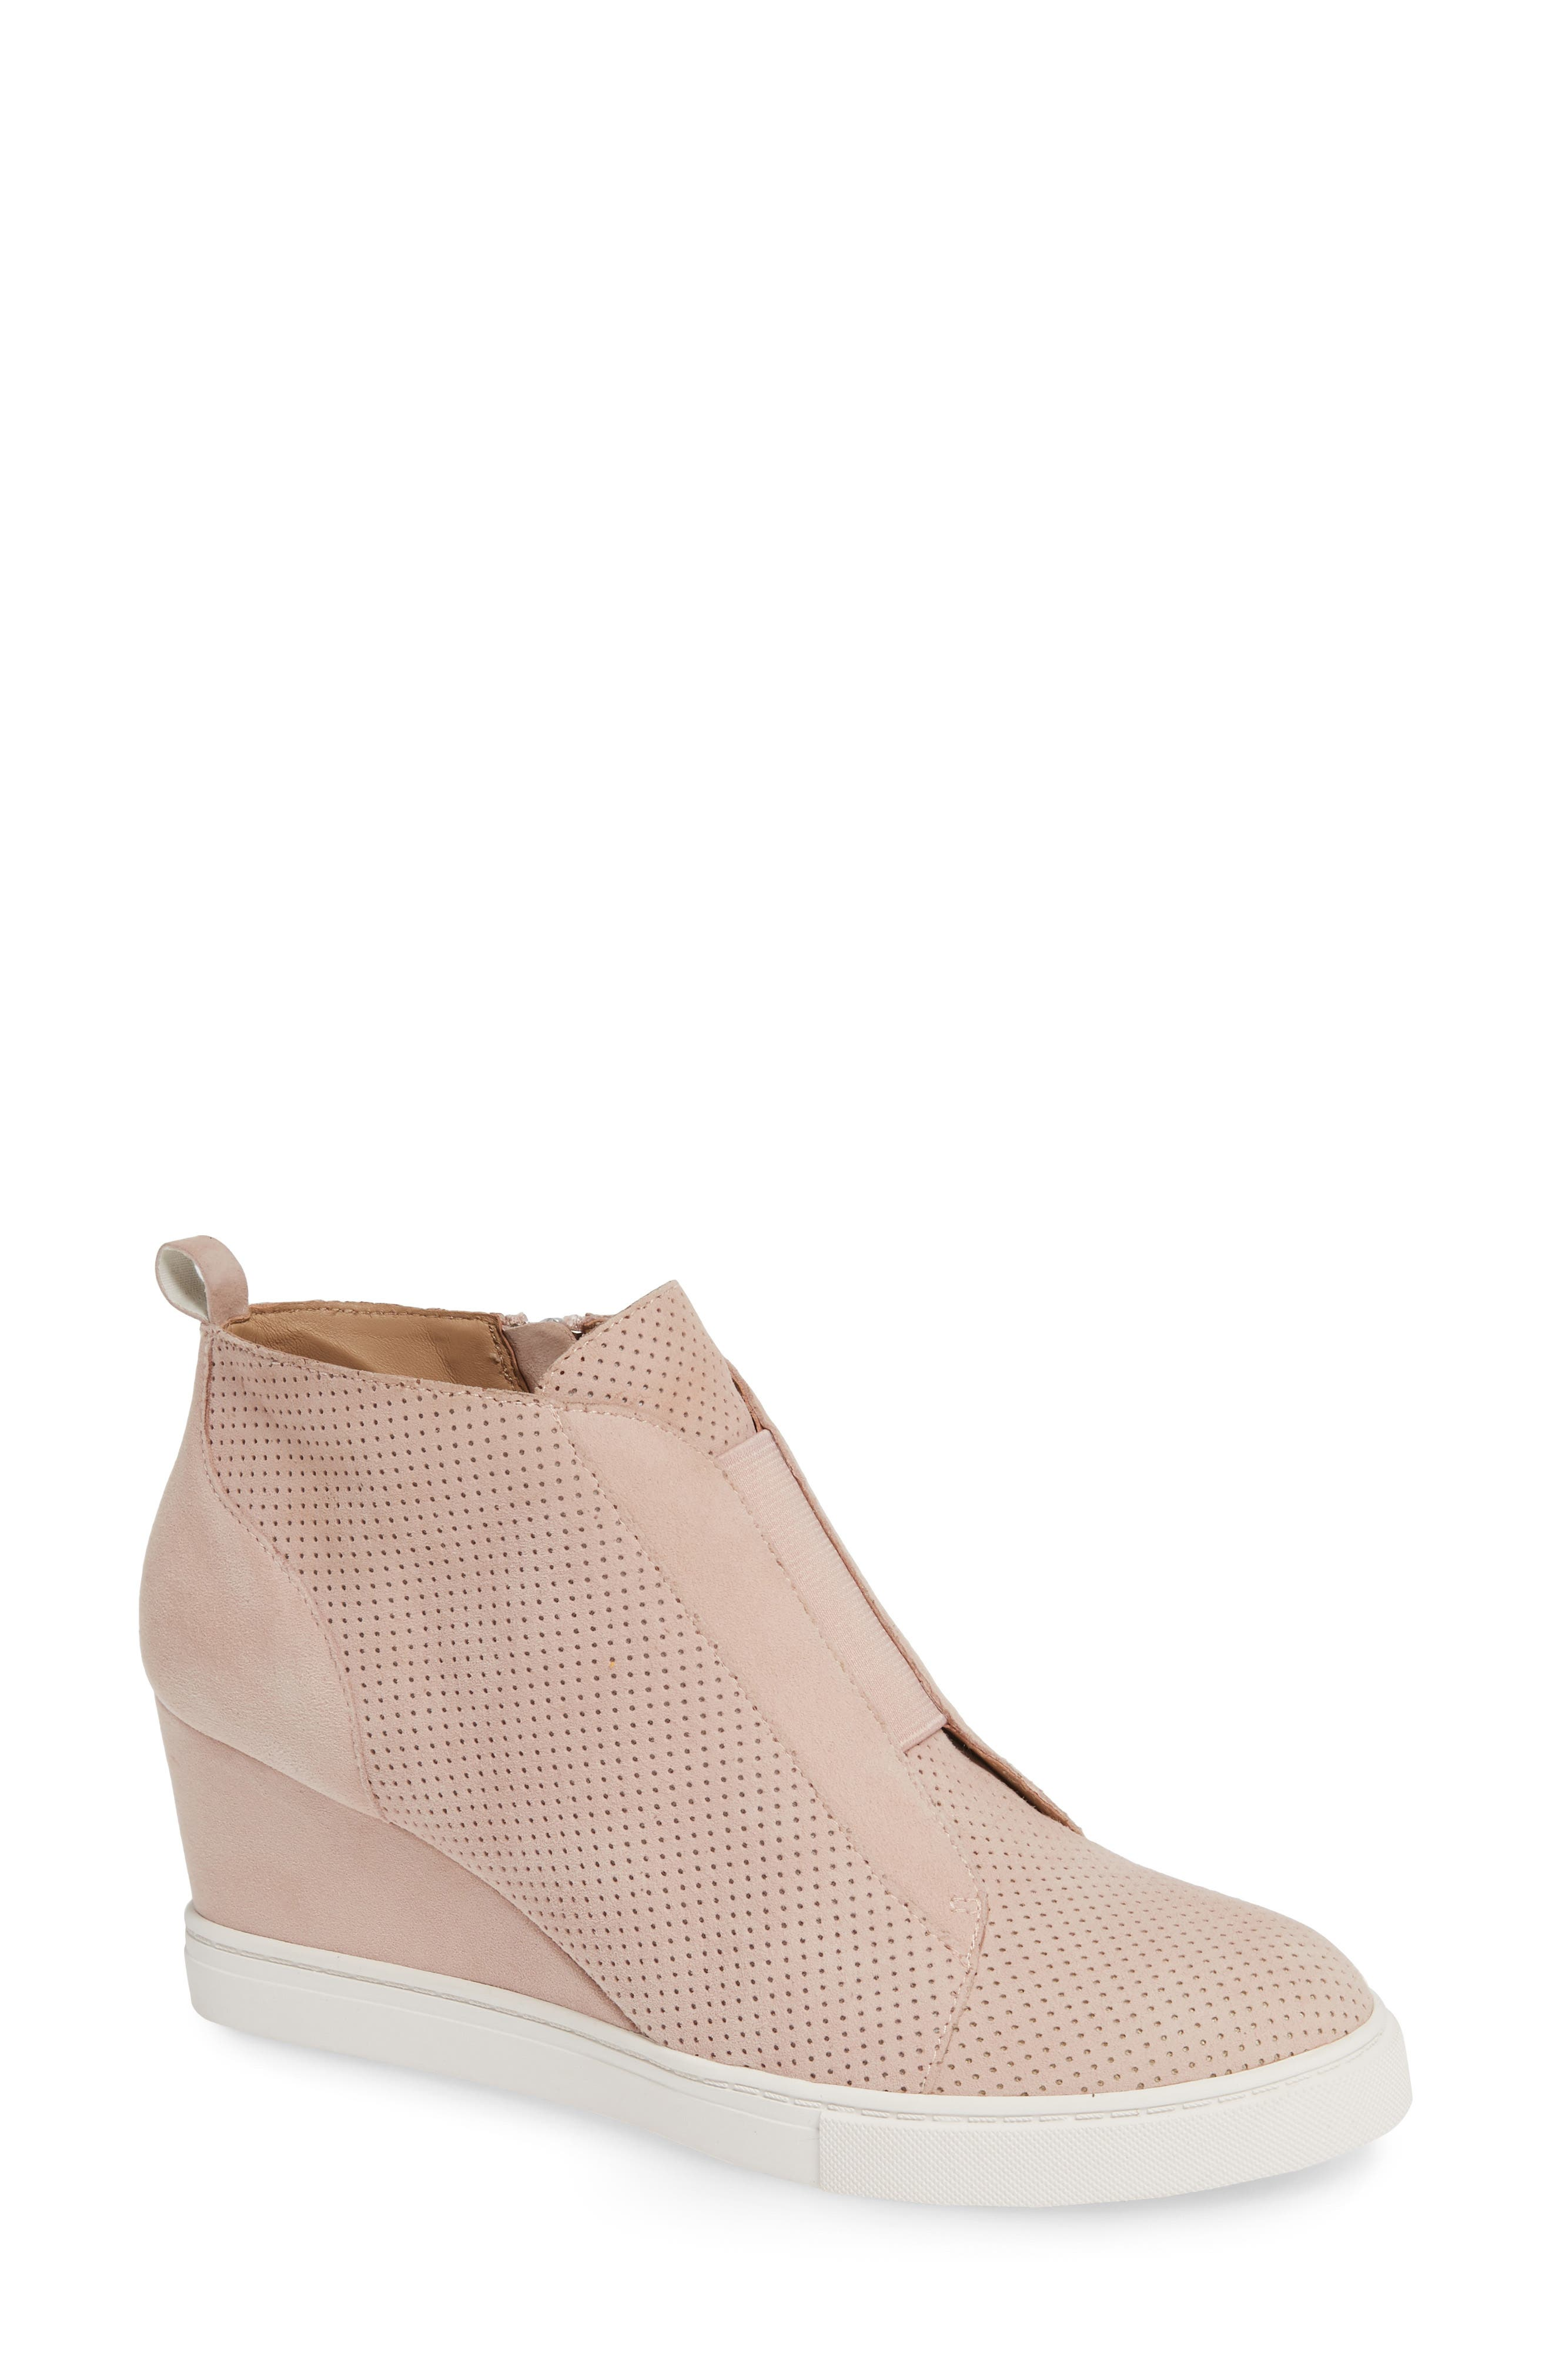 LINEA PAOLO, Felicia Wedge Bootie, Main thumbnail 1, color, BLUSH PERFORATED SUEDE